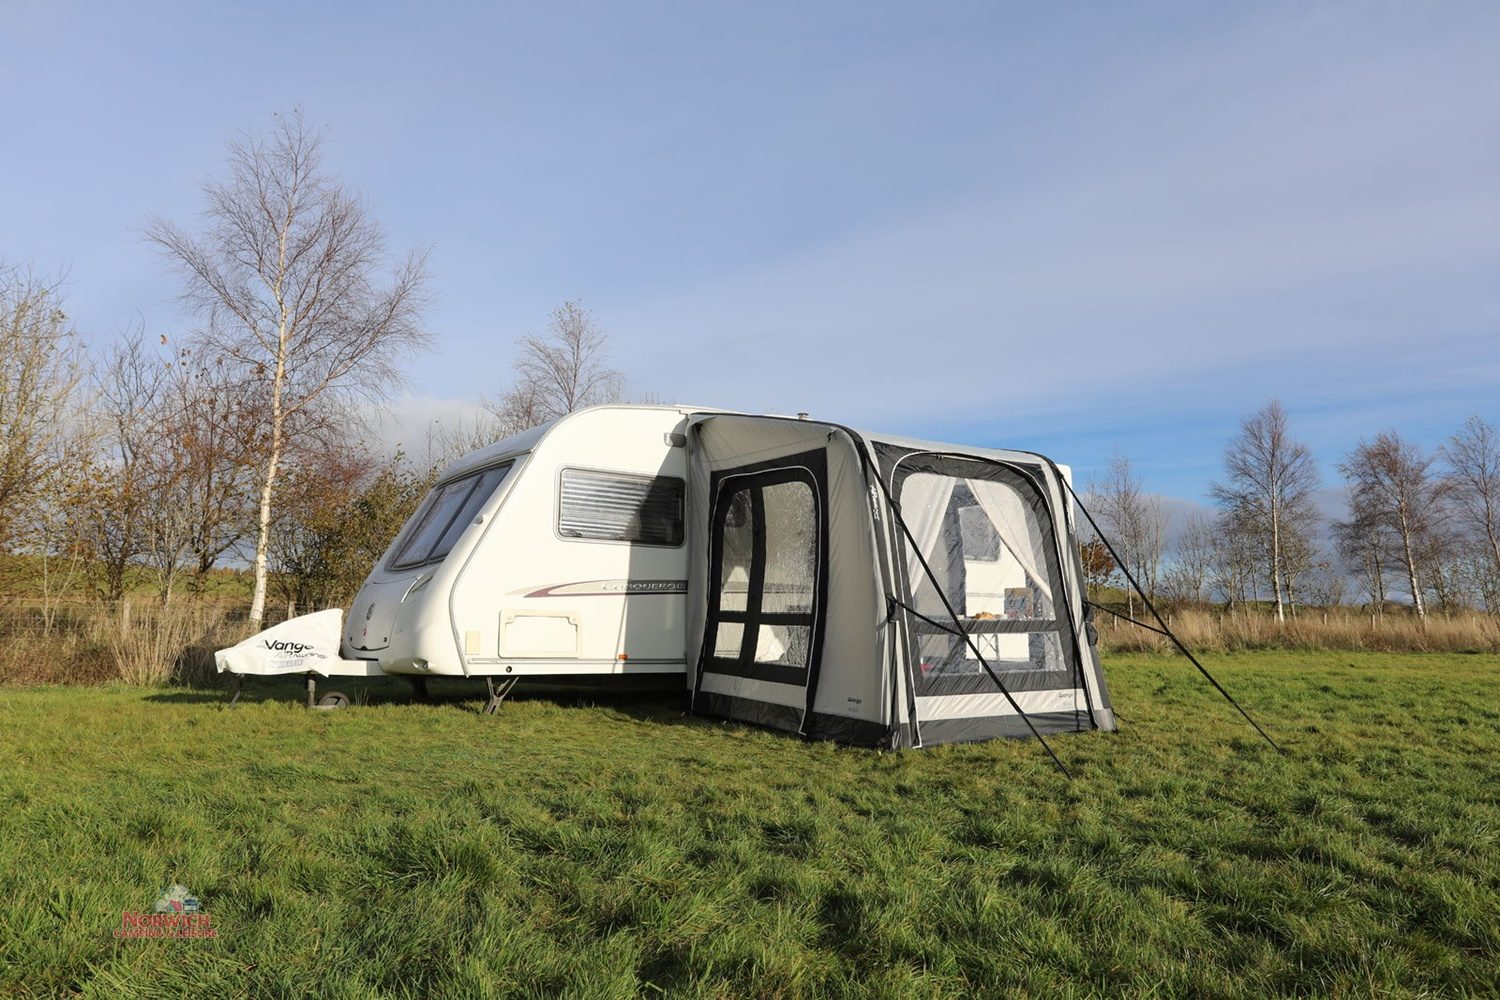 Vango Balletto 200 Airbeam Awning Norwichcamping Co Uk16